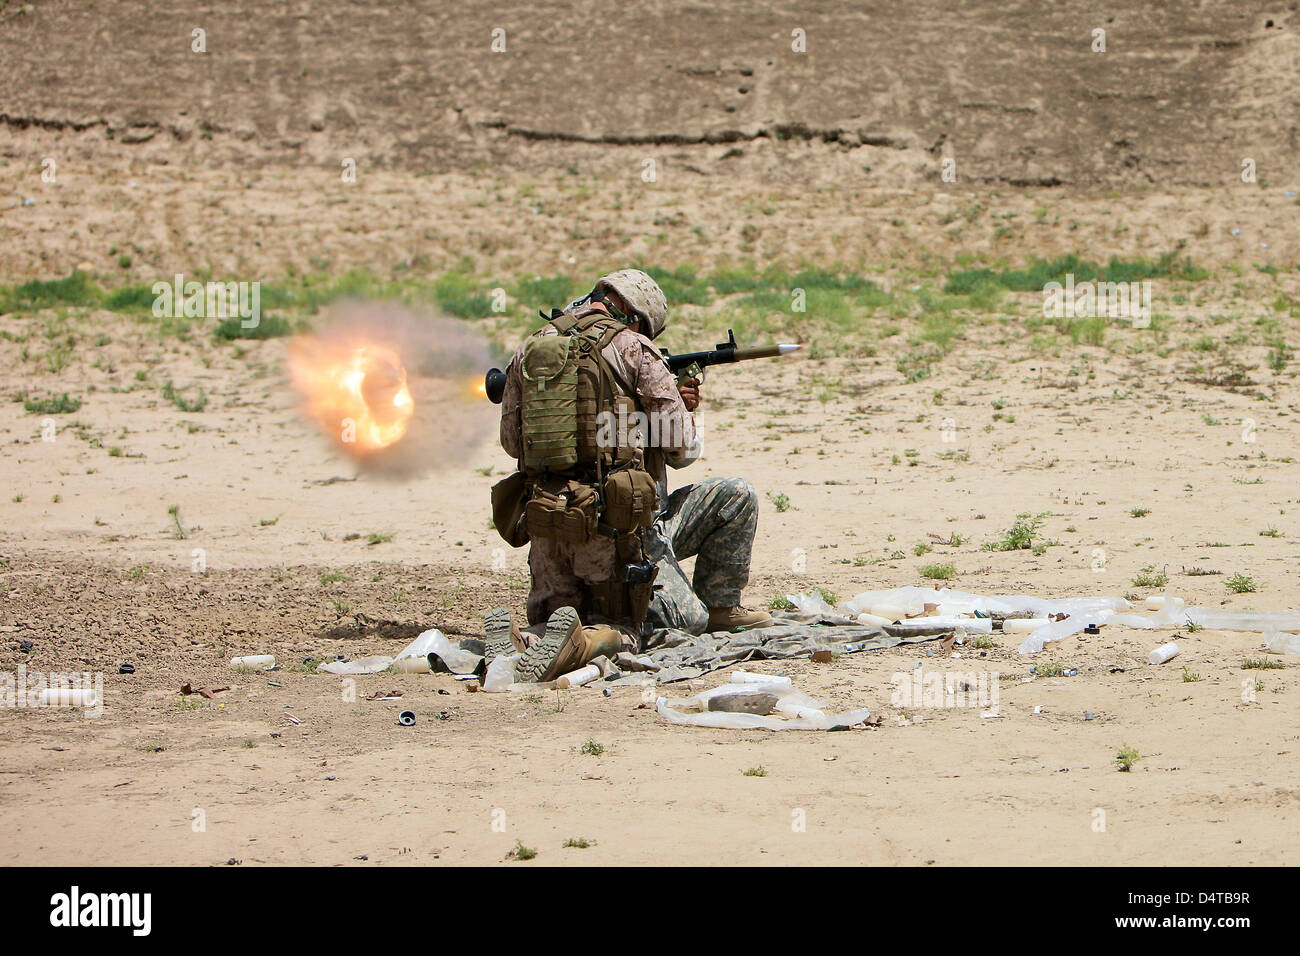 U.S. Army soldier fires a rocket-propelled grenade launcher. - Stock Image